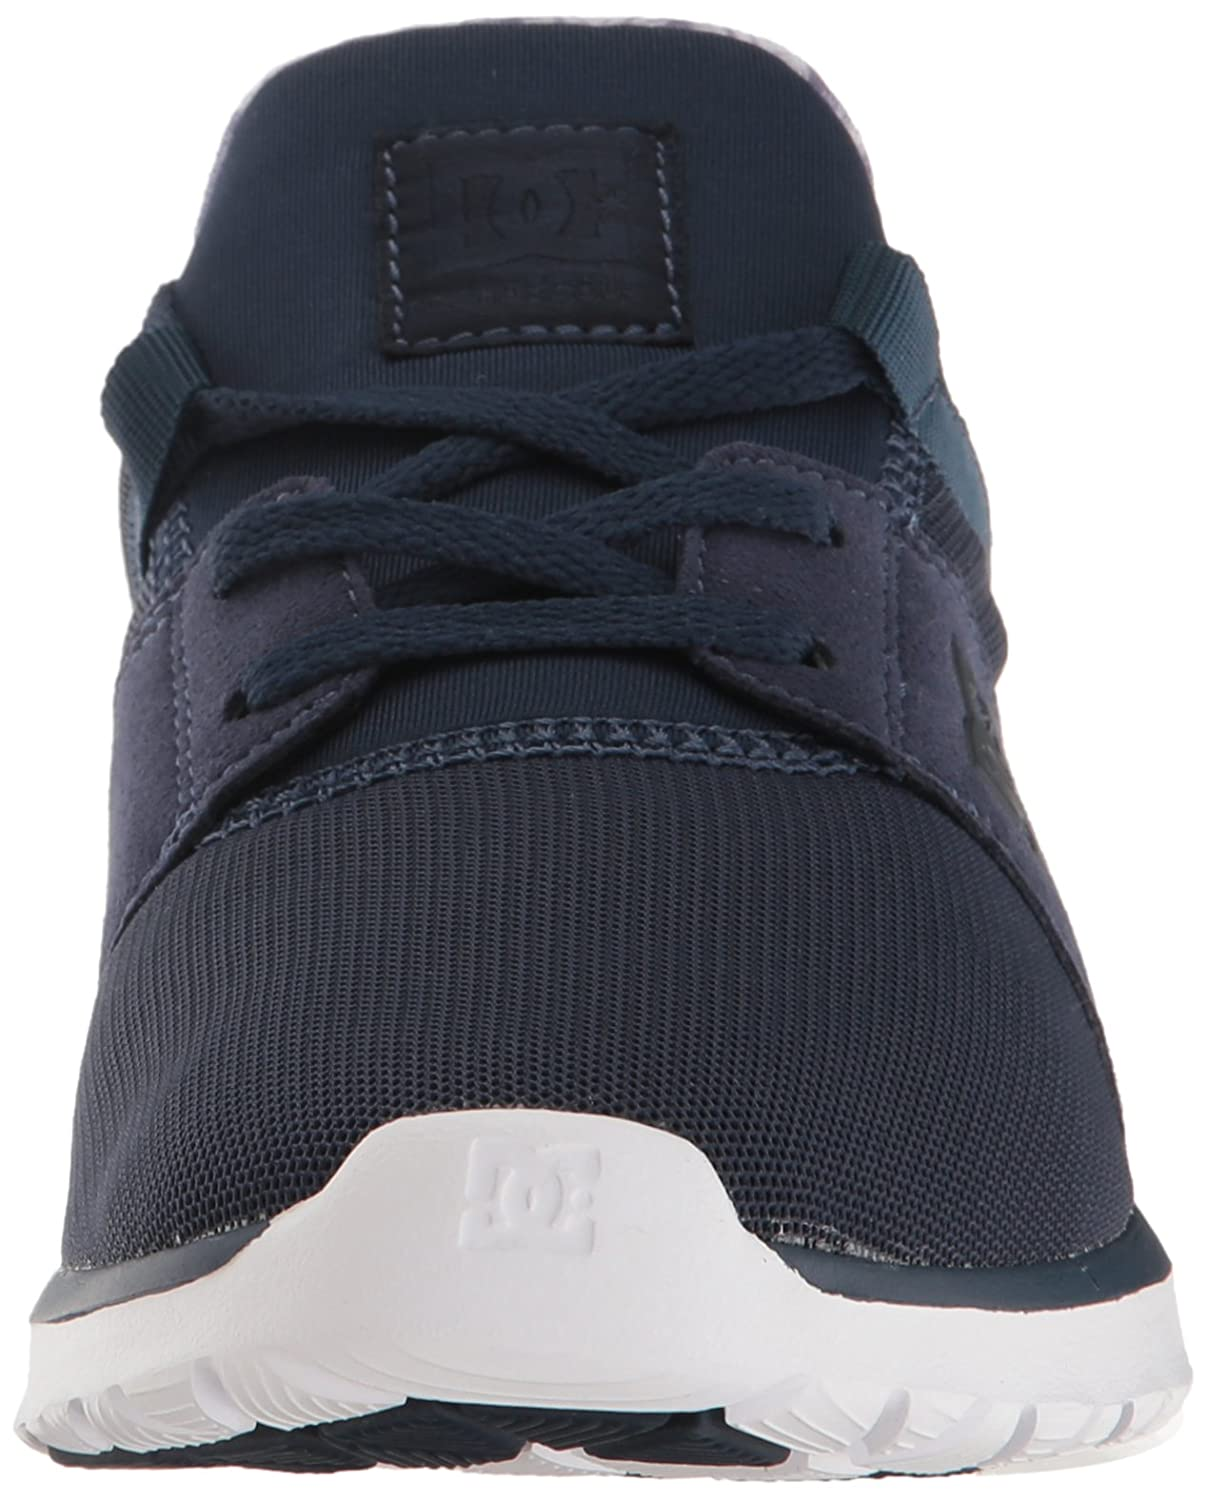 DC Women's Heathrow SE M Skate Shoe B01L3M319K 6.5 M SE US|Navy/Navy 98cab4